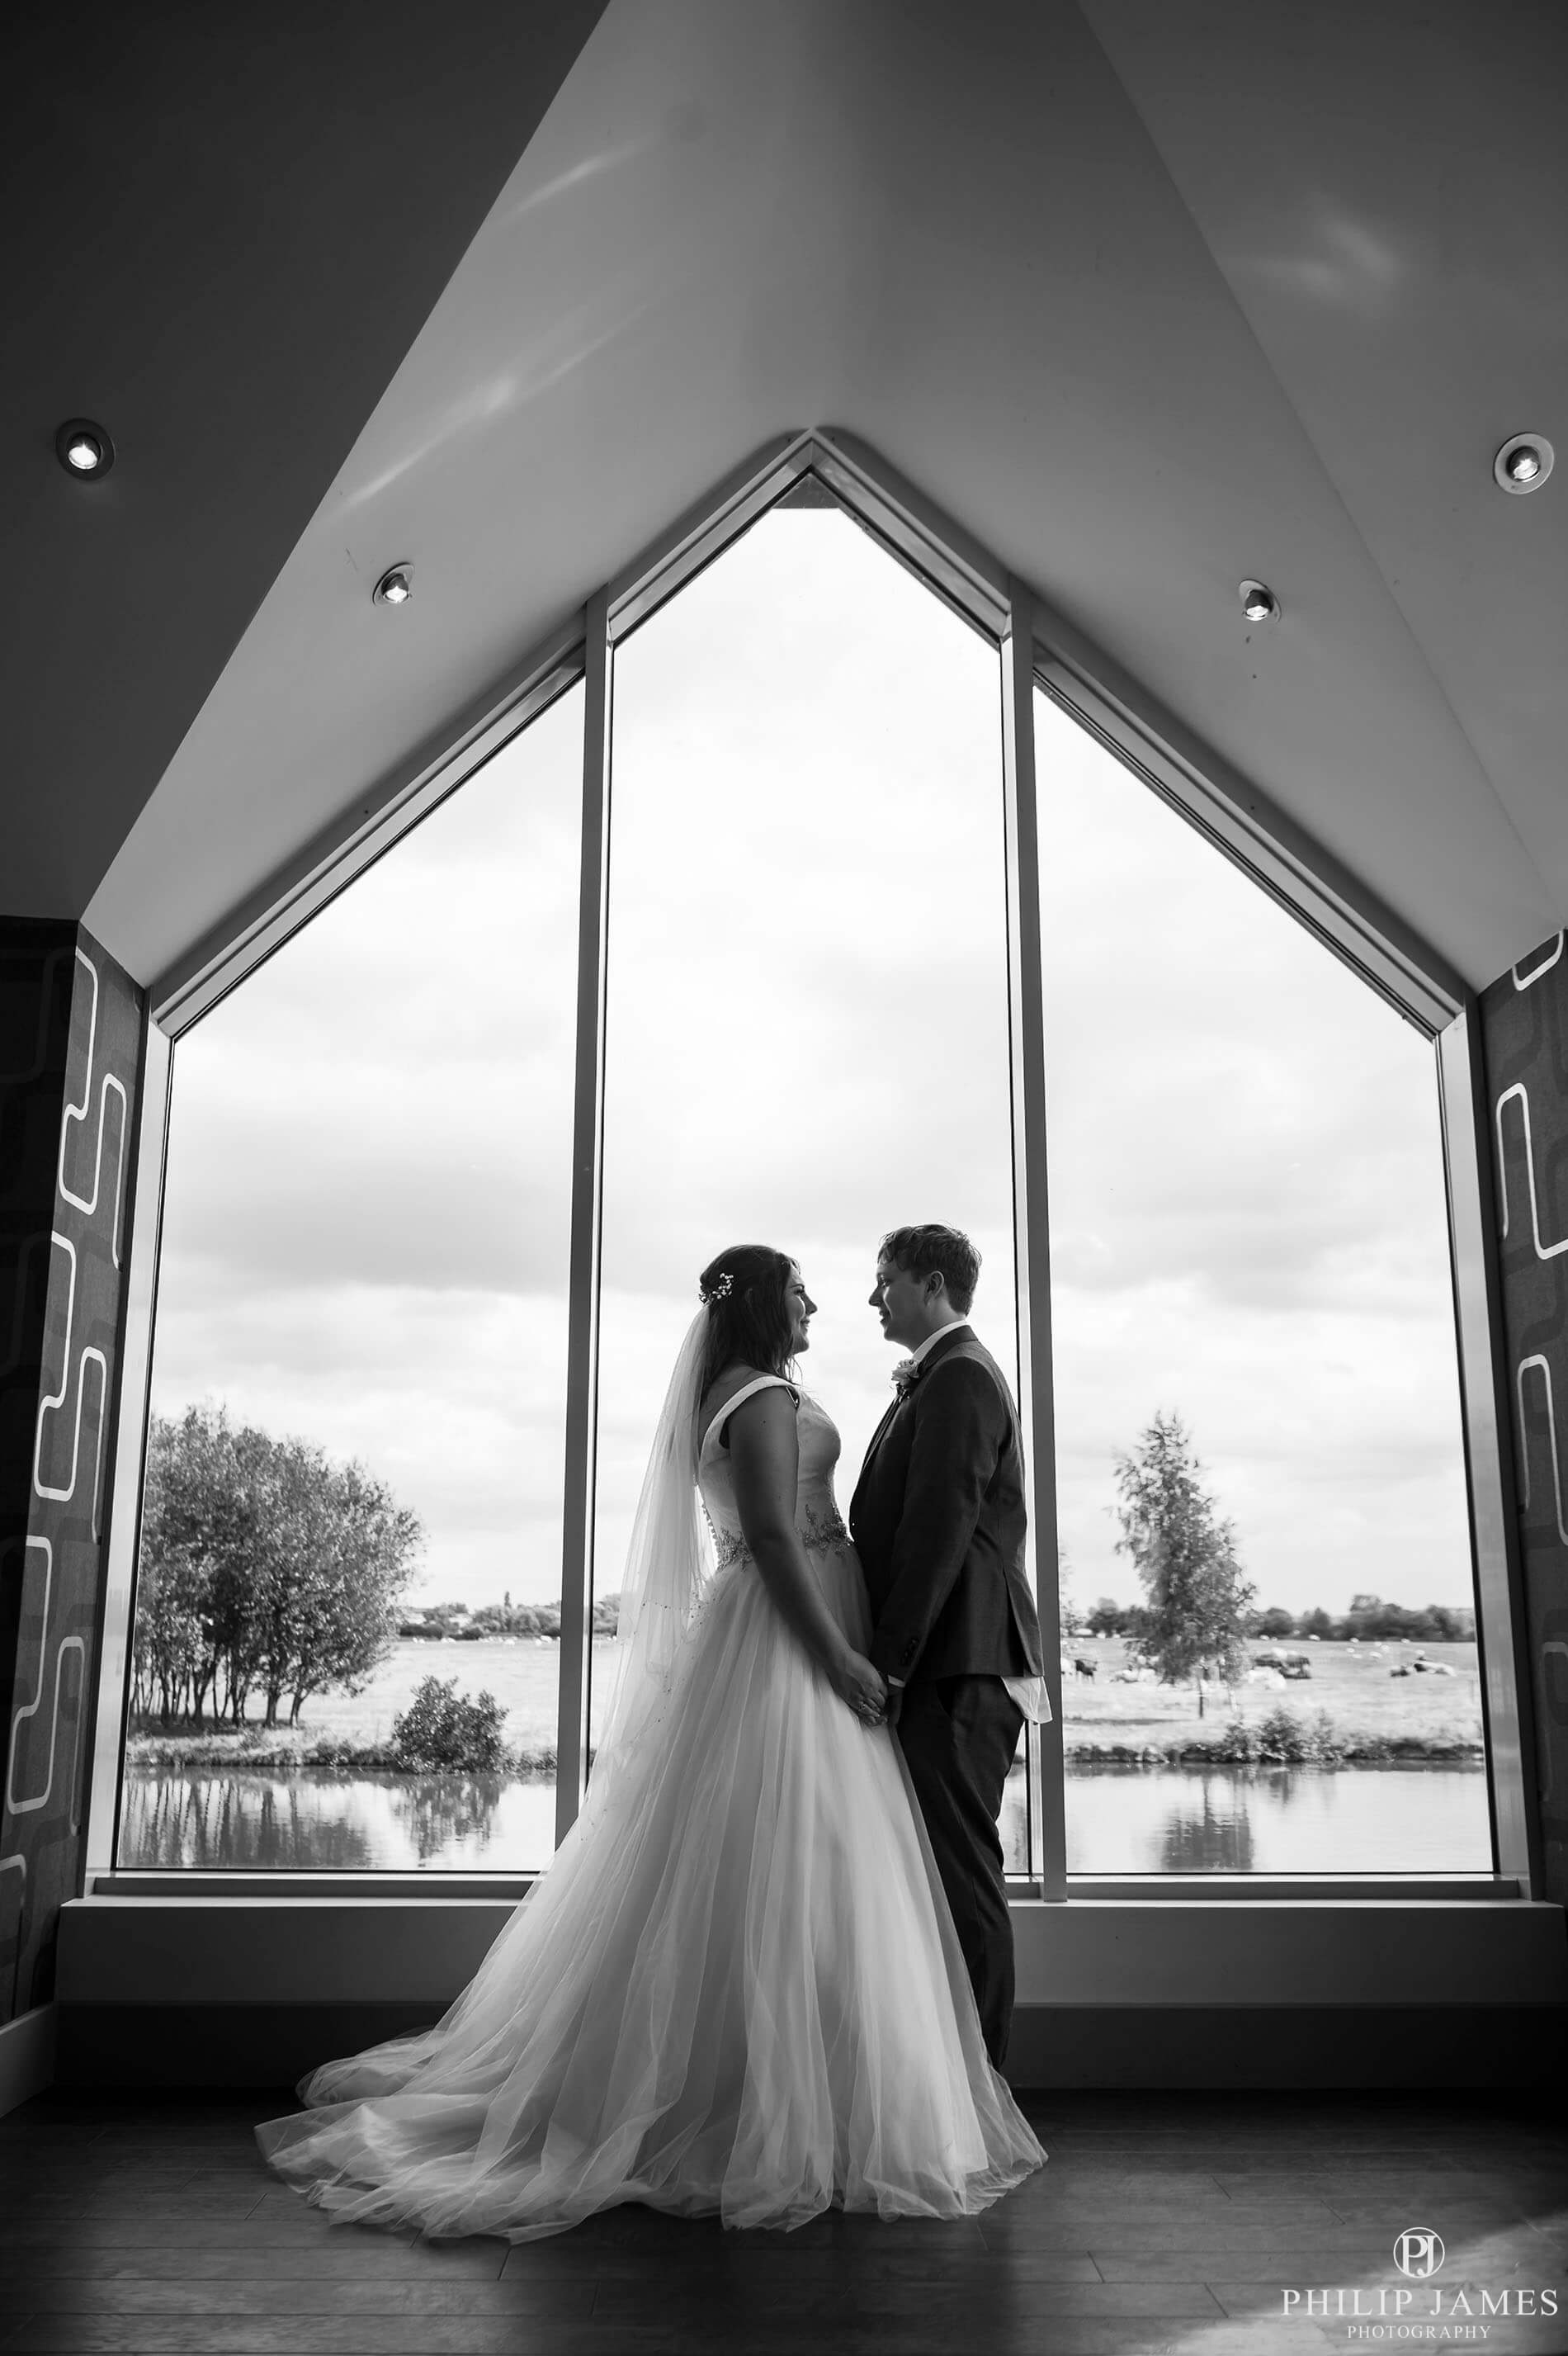 Choosing your wedding photographer - Birmingham wedding photographer, West Midlands, Solihull and rest of the UK. Specializing in wedding photography Birmingham & Solihull